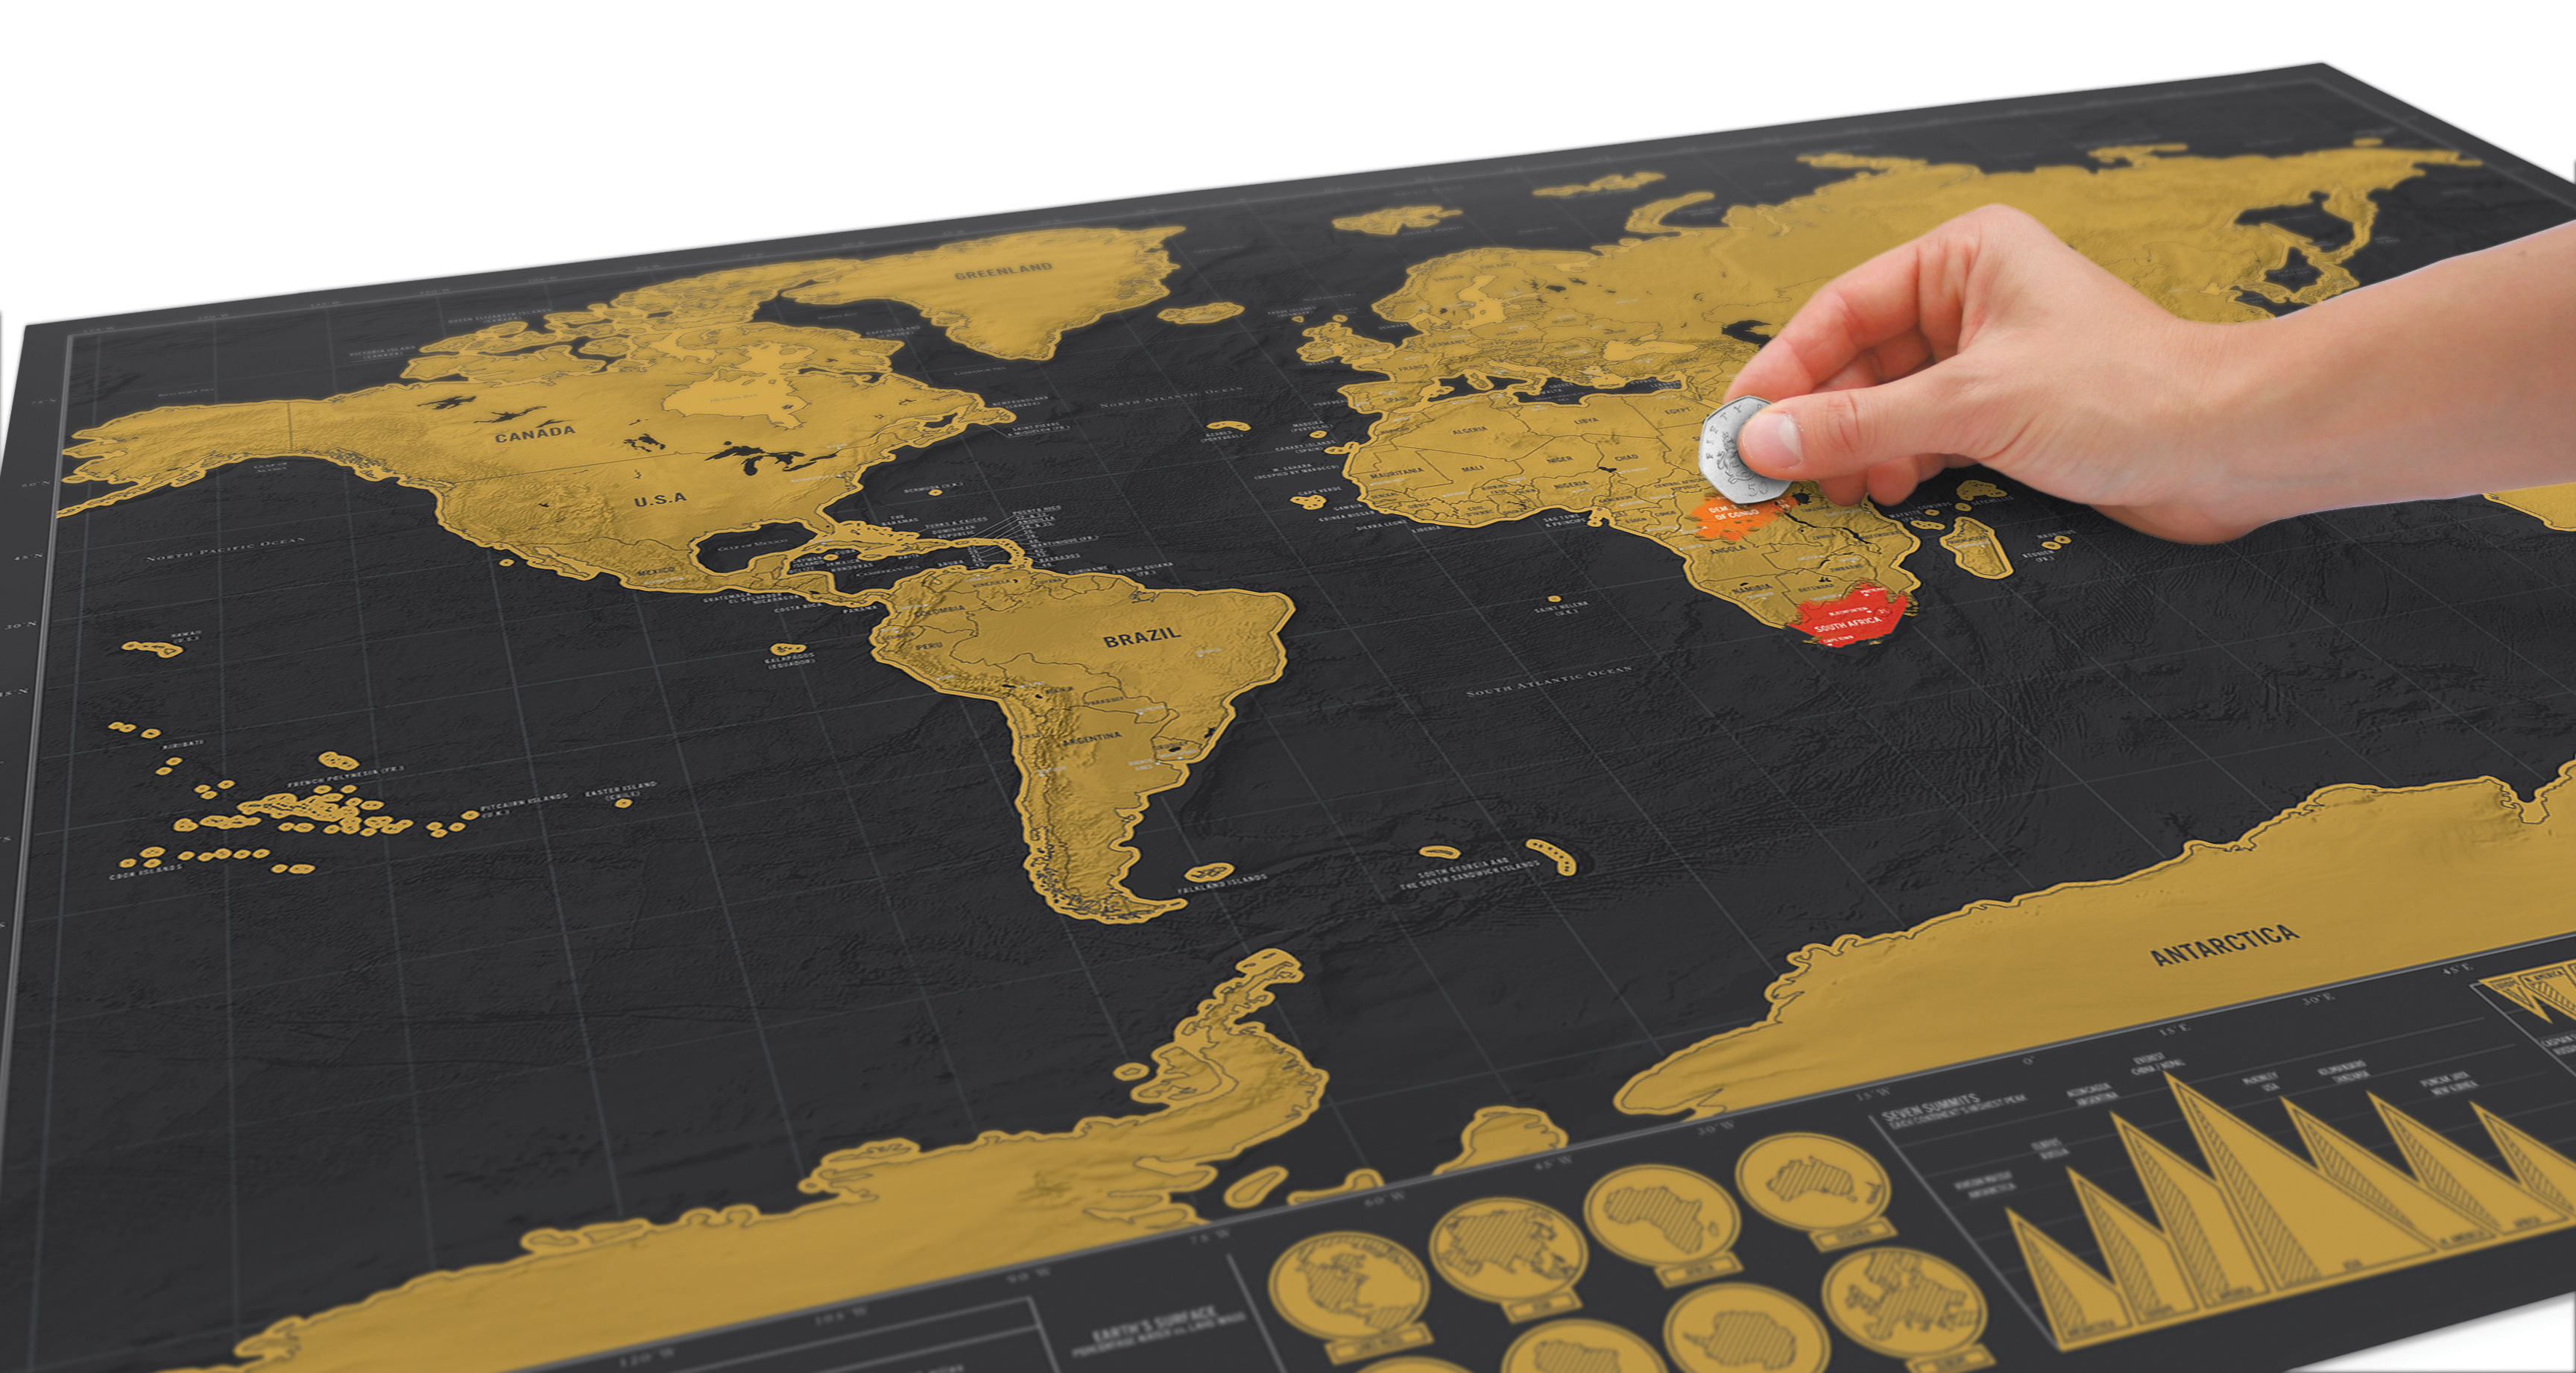 Scratch map deluxe poster world map to scratch and accessories scratch map deluxe poster world map to scratch and accessories black gold by luckies gumiabroncs Images